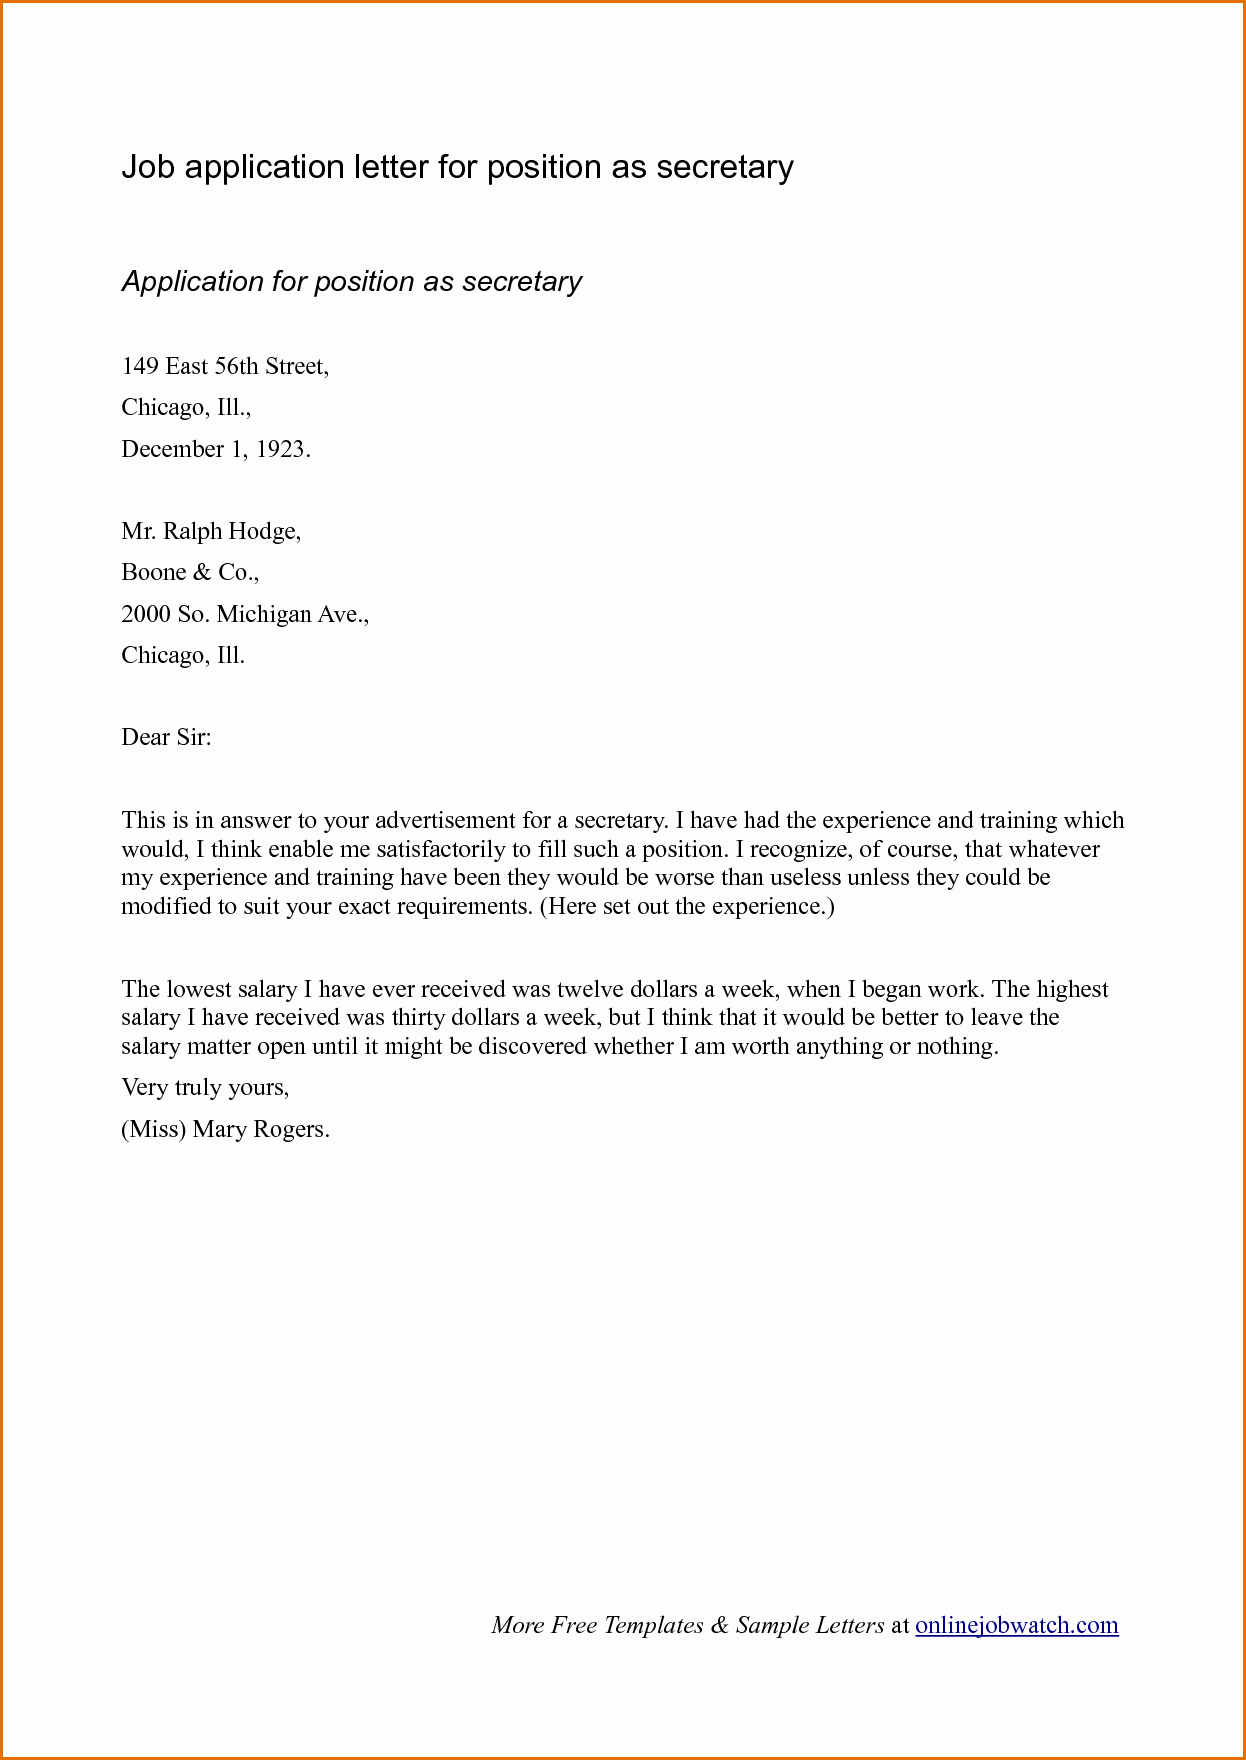 Job Application Letter format Pdf Fresh Sample Cover Letter format for Job Application